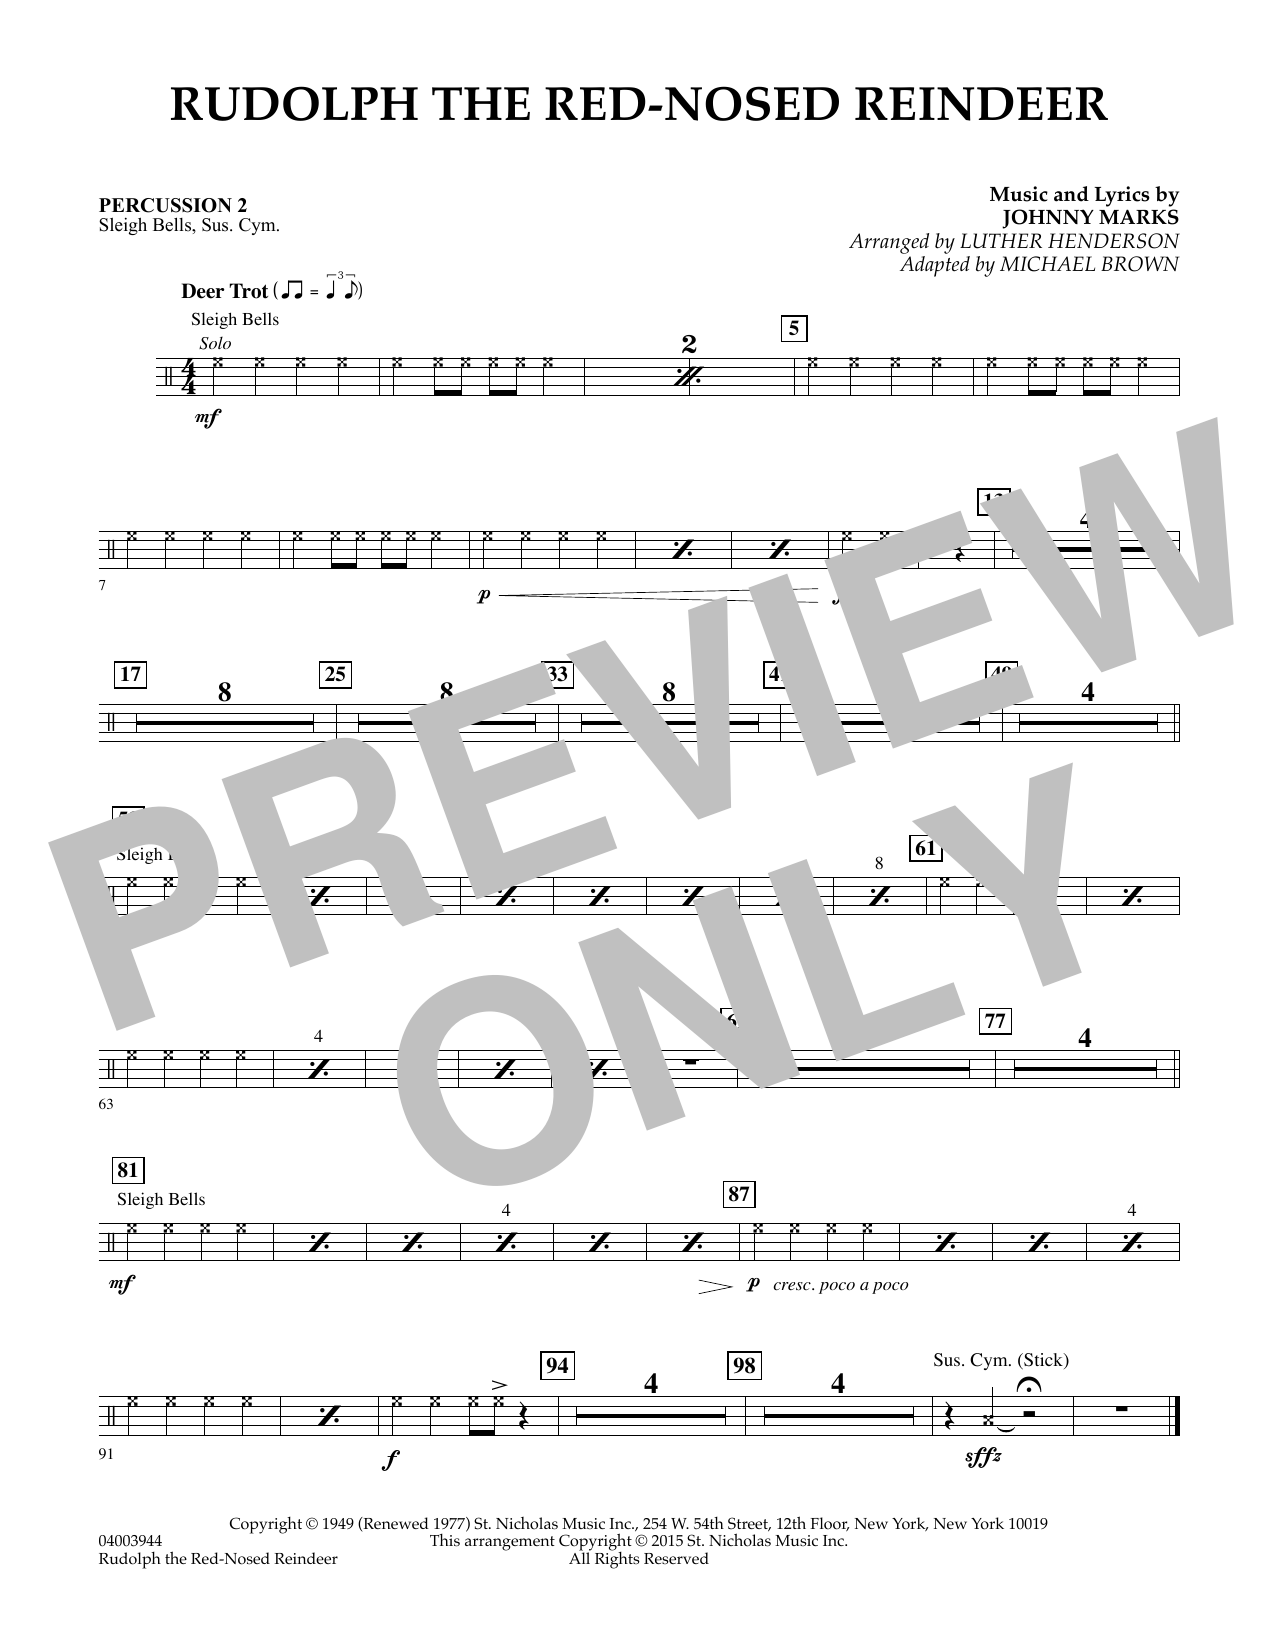 Rudolph the Red-Nosed Reindeer (Canadian Brass) - Percussion 2 (Concert Band)